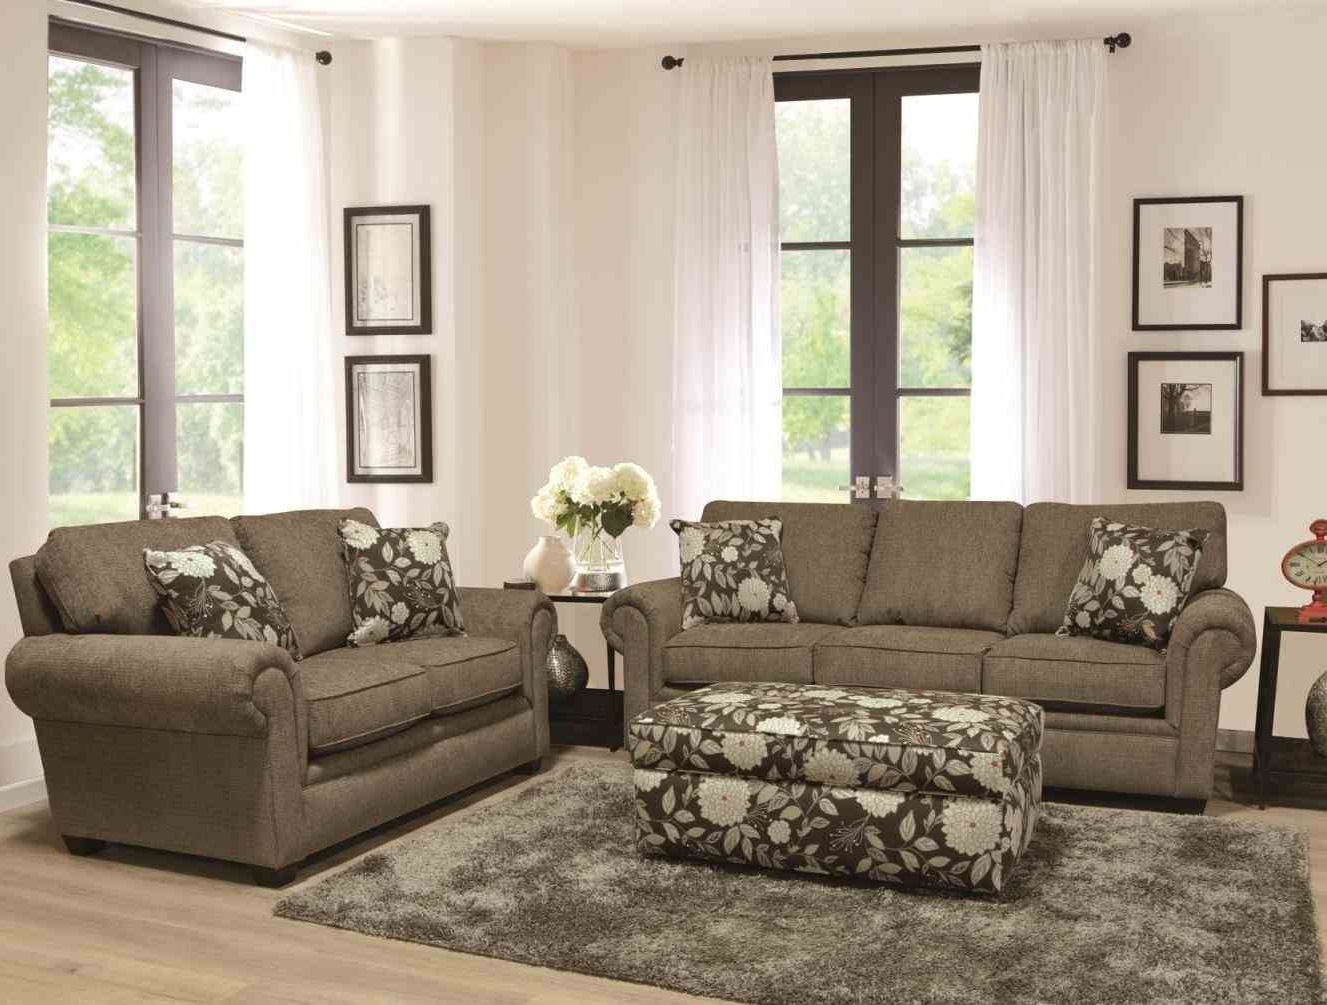 2018 Des Moines Ia Sectional Sofas Regarding Justin Salem Meyer Des Moines Iowa Wedding And Fabric Sectional (View 5 of 20)